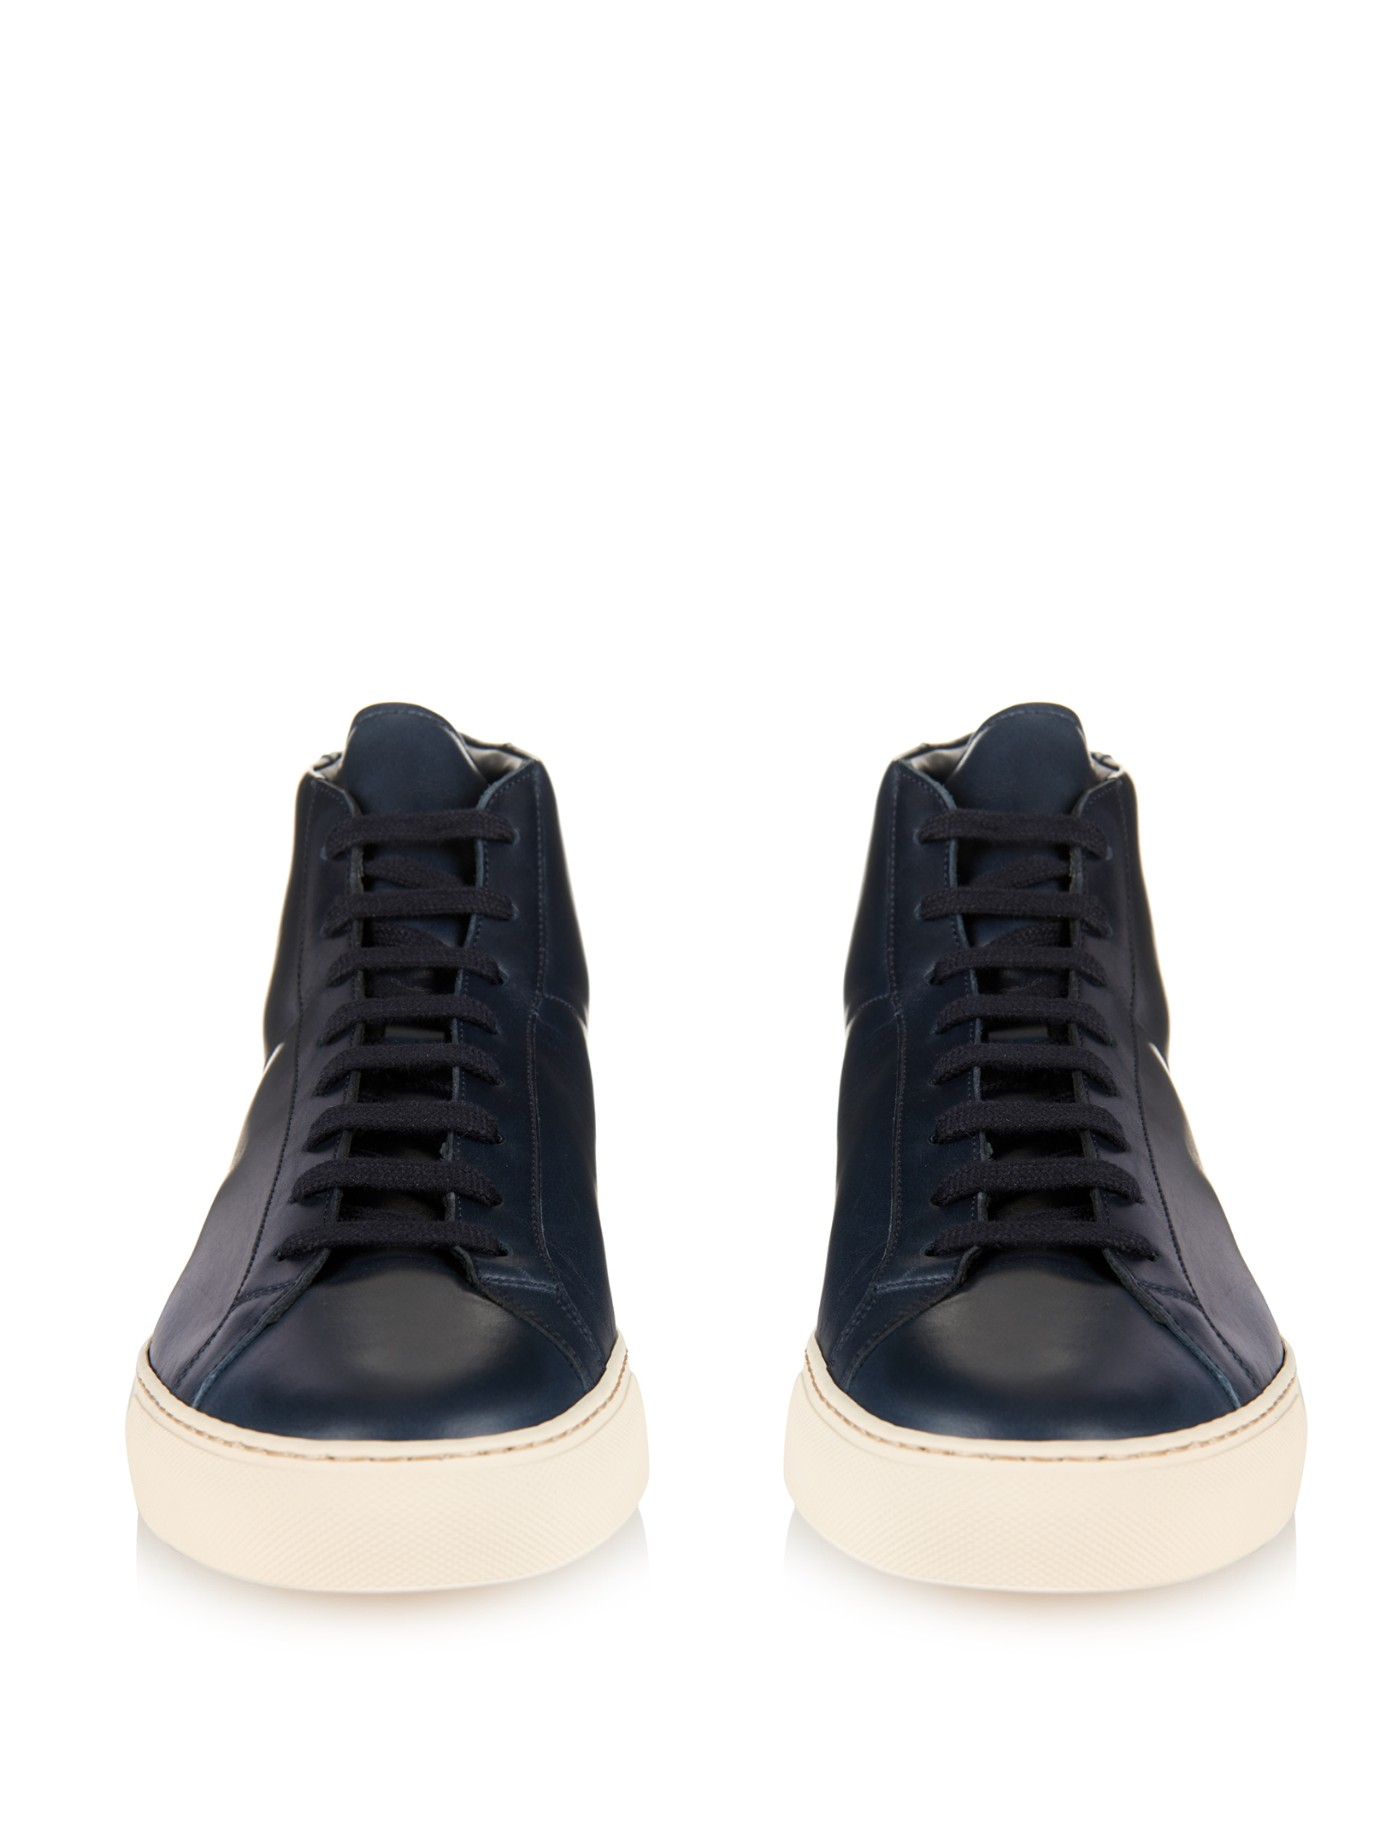 COMMON PROJECTS Leather High Trainers fORPUDuH